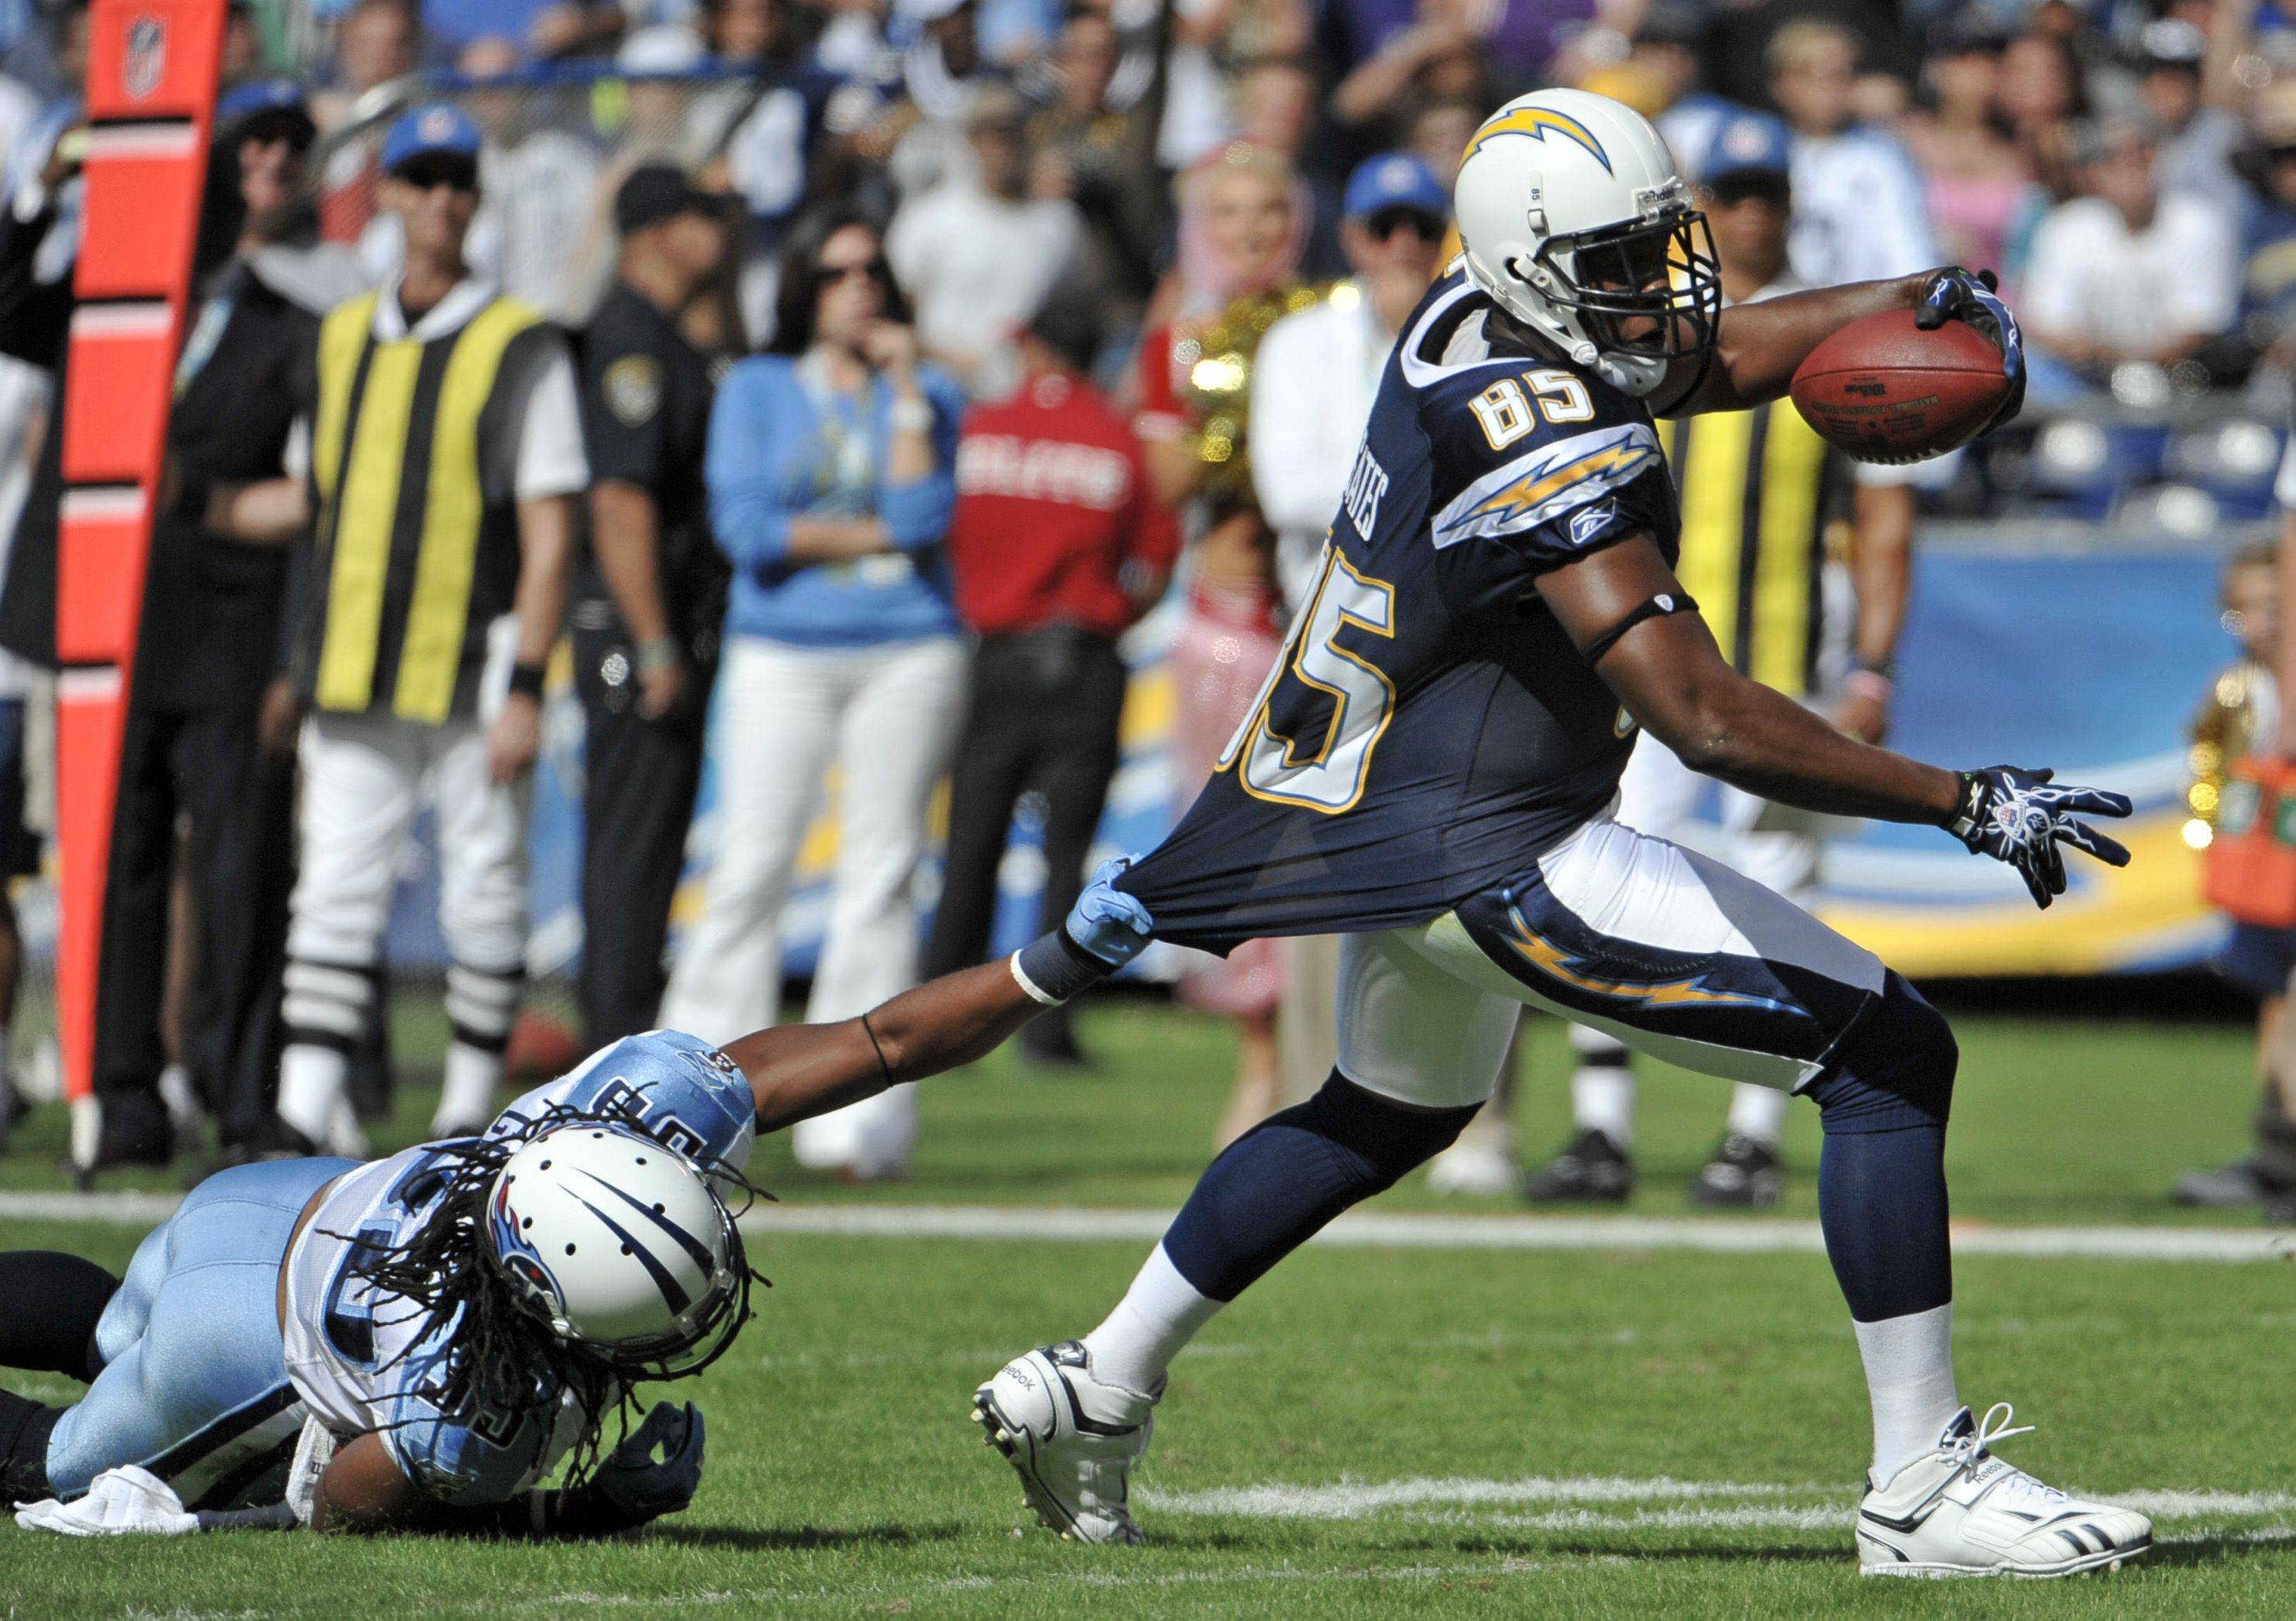 San Diego Chargers tight end Antonio Gates (85) drags Tennessee Titans safety Michael Griffin, left, while gaining 15 yards on a pass-completion during the first half of an NFL football game on Oct. 31 in San Diego.